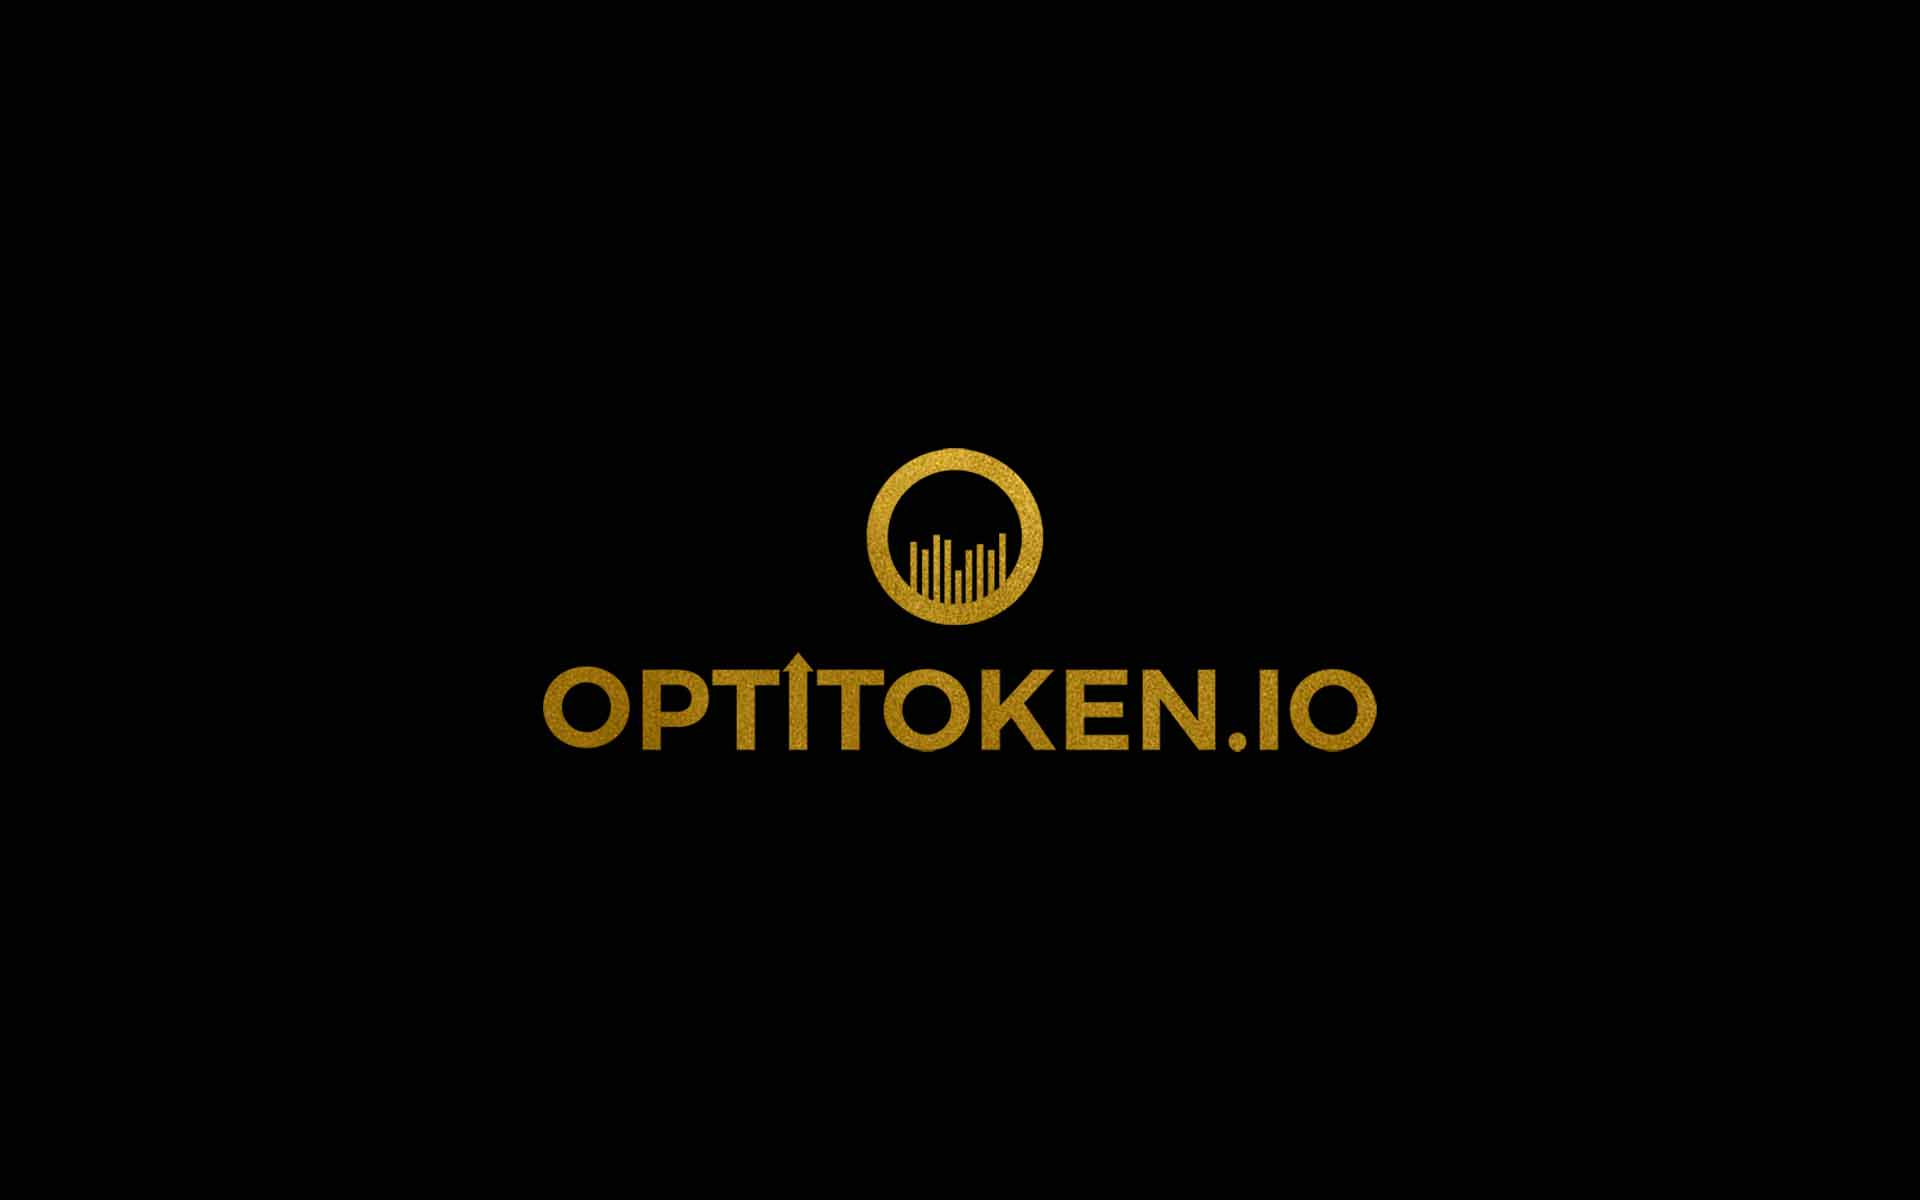 Optitoken adds former iShares and BlackRock Consultant to Team and Solidifies Rank As Top ICO of 2018 Candidate